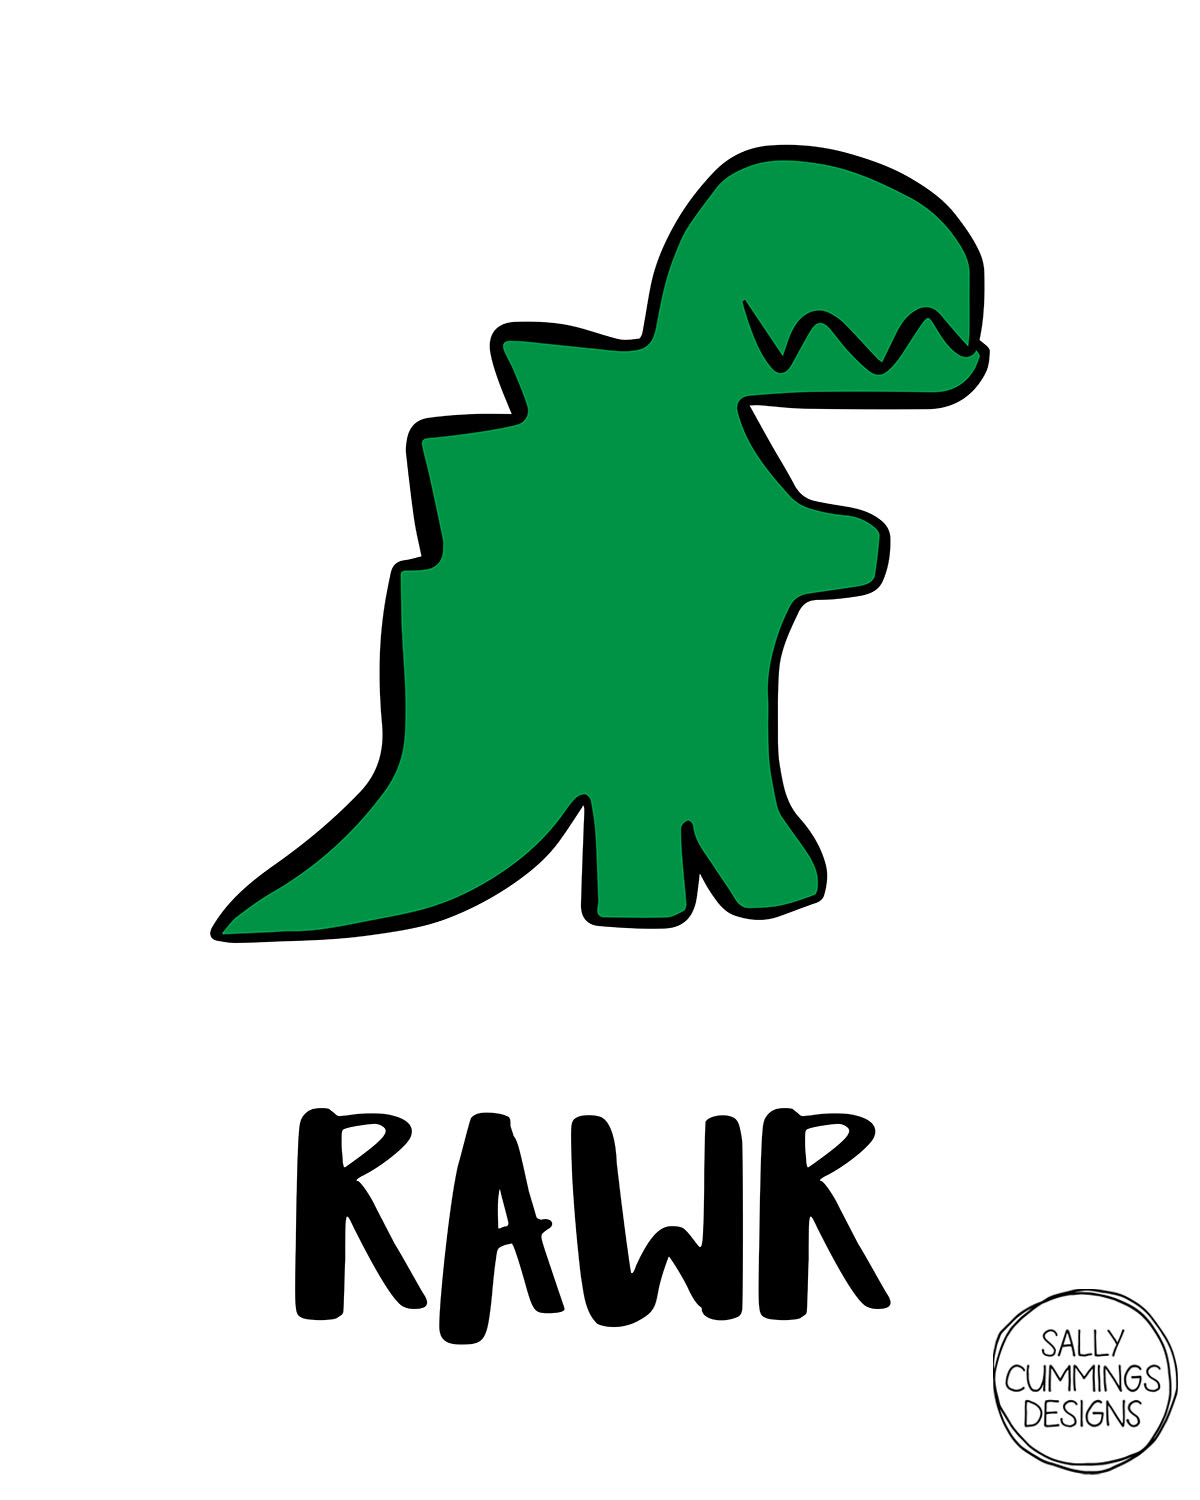 Sally Cummings Designs - Rawr